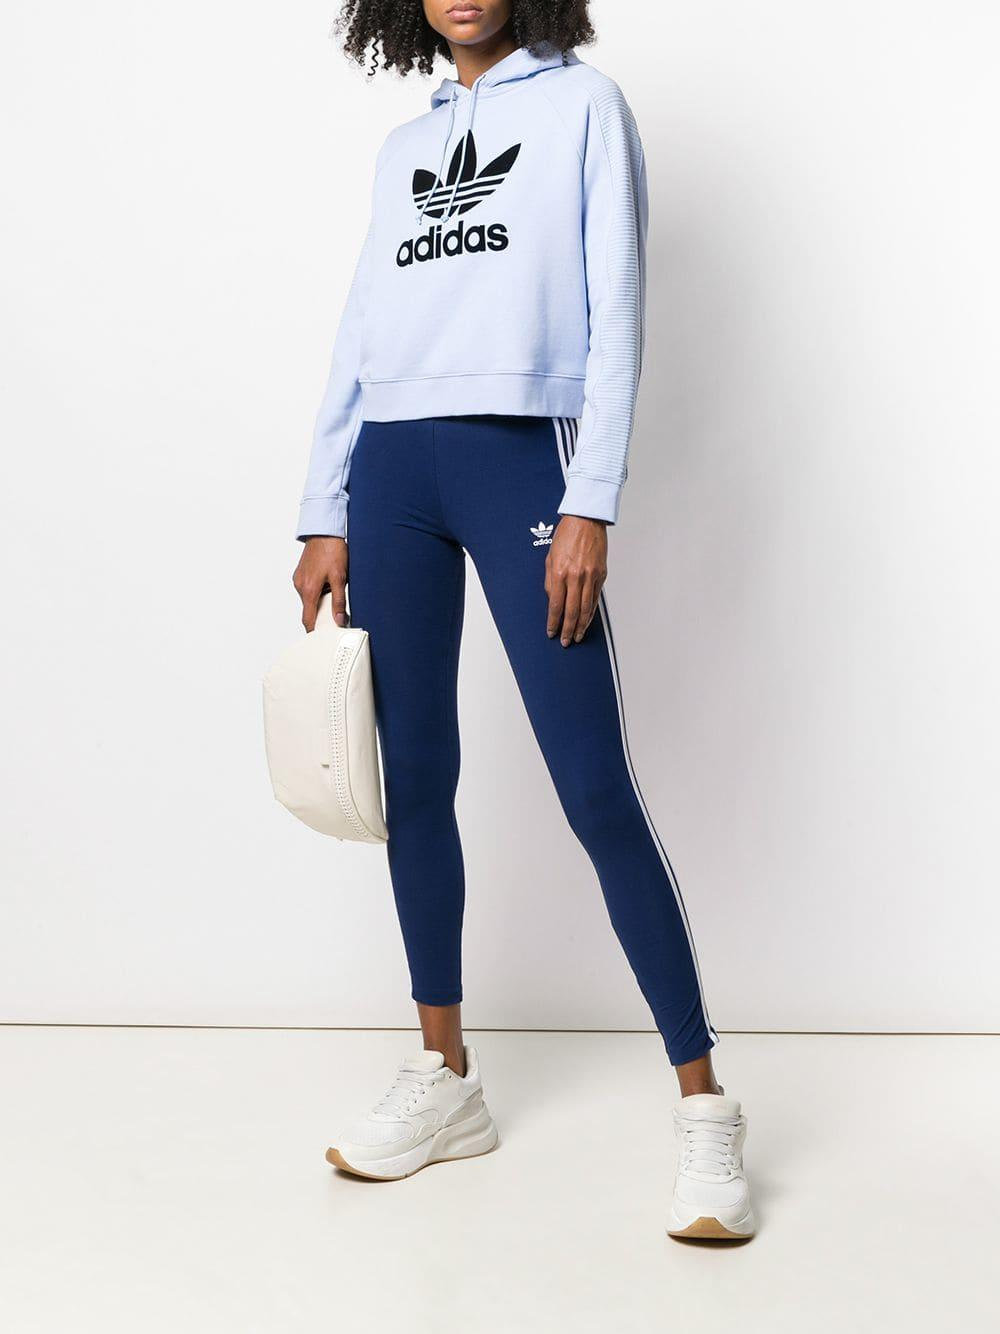 5efdbdf235030 Lyst - adidas 3-stripes Leggings in Blue